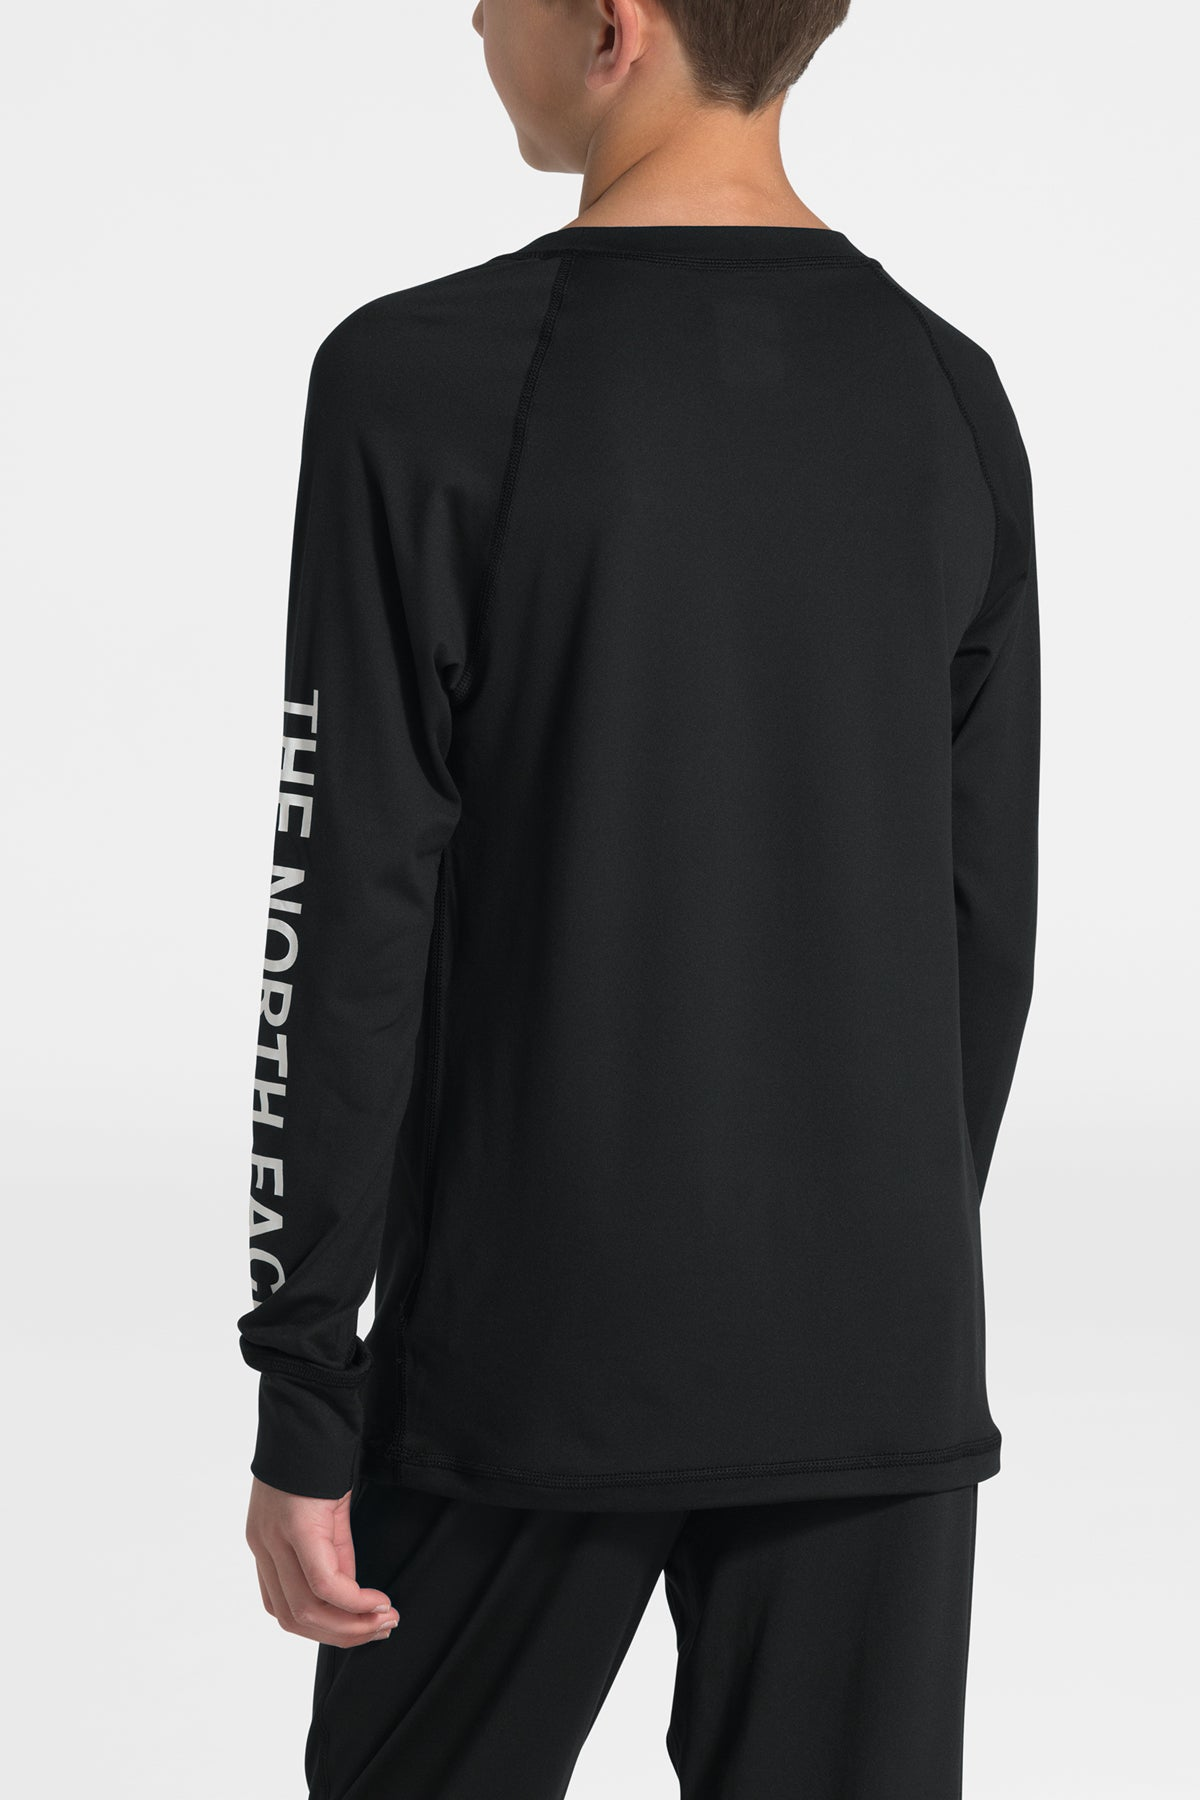 f720c0c9e The North Face Youth Warm Crew Baselayer Set - Black